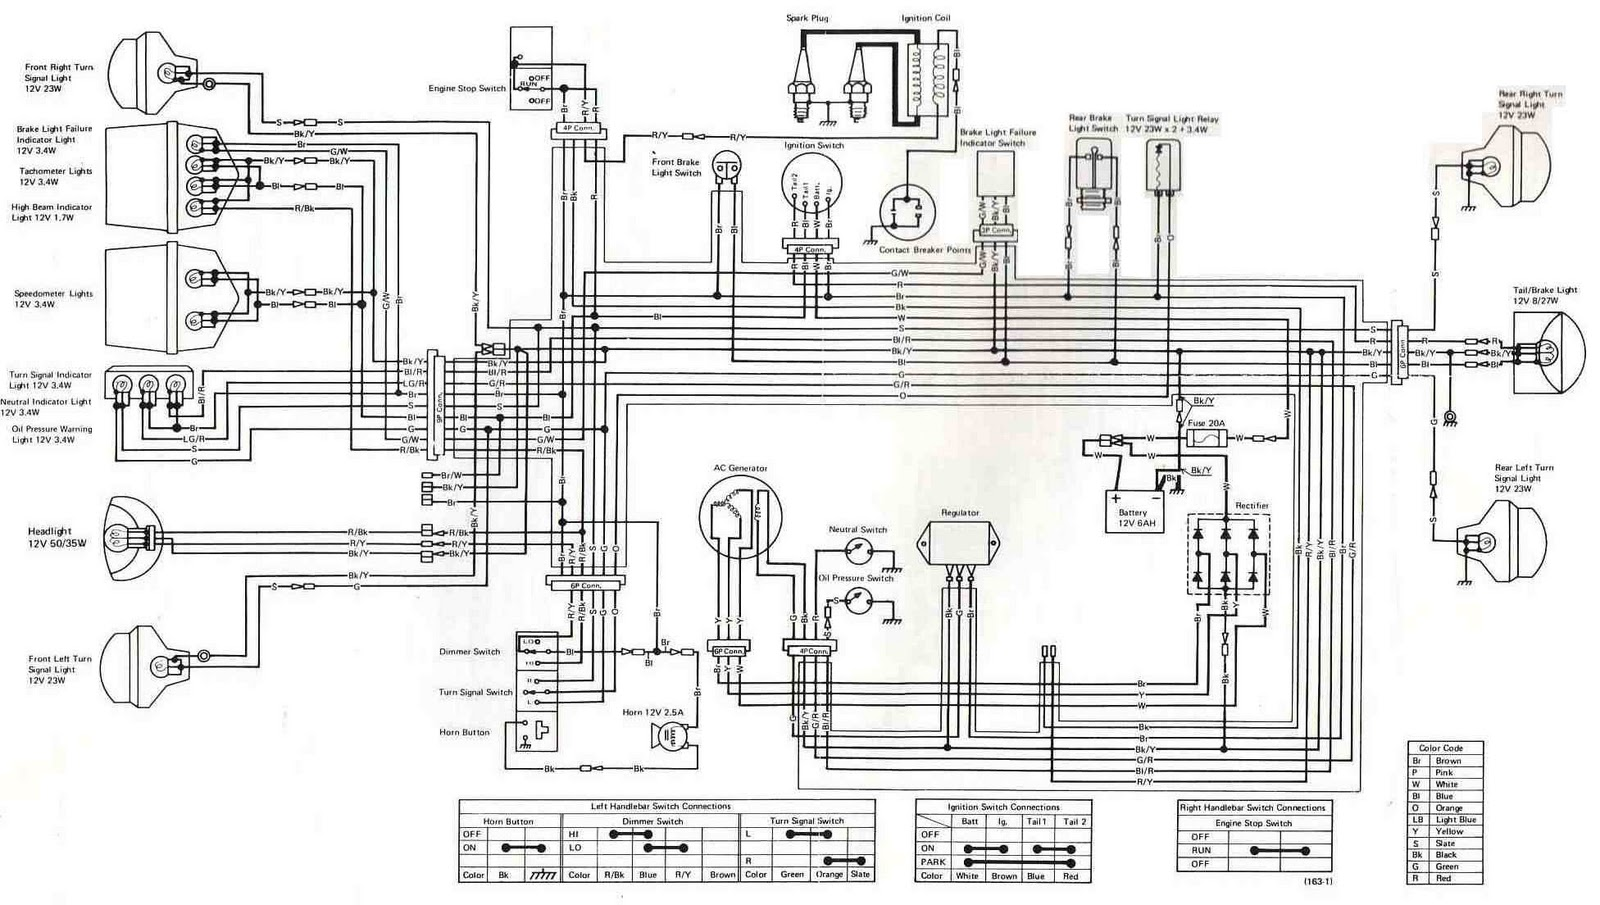 Kawasaki Wiring Diagrams Porsche 996 Abs Diagram Klt 200 All About